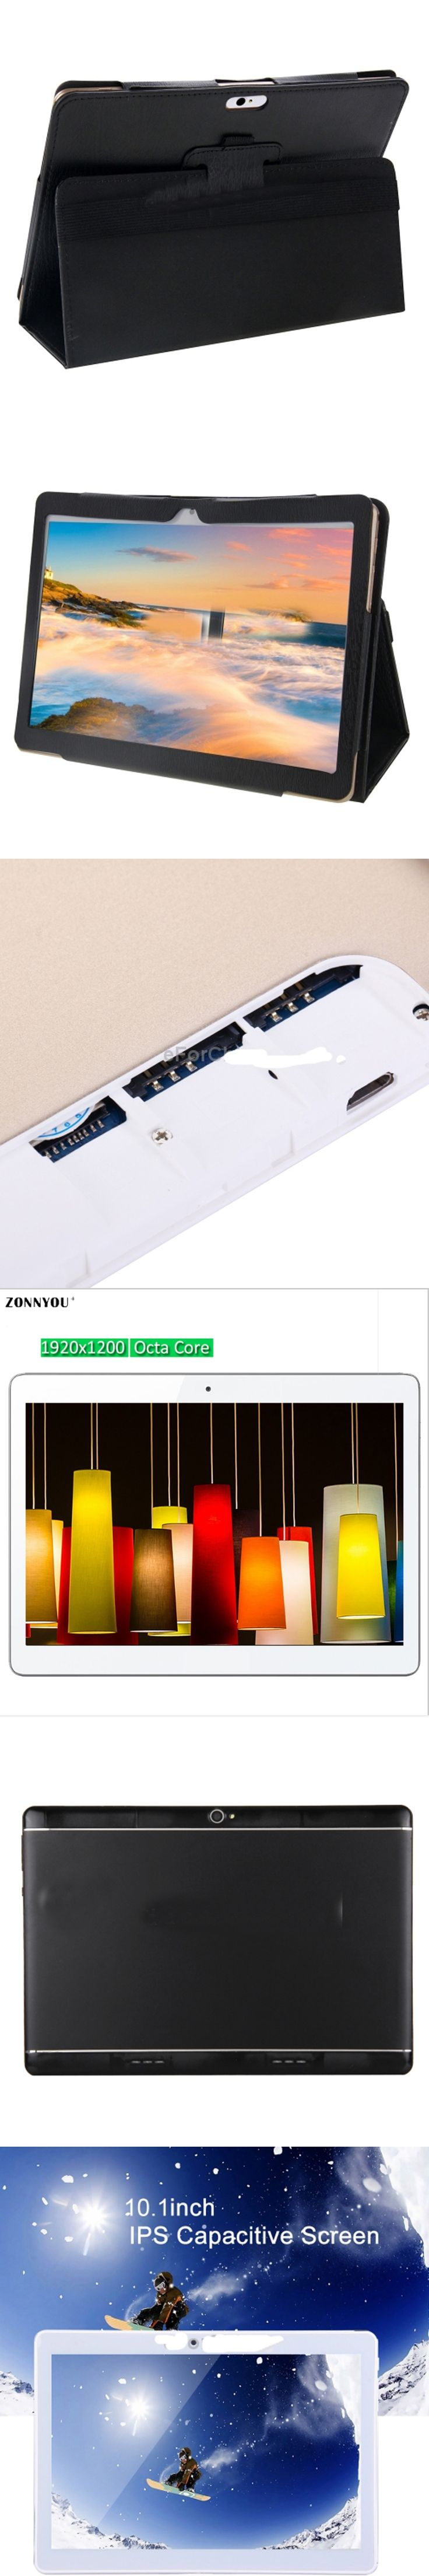 10.1 inch Tablet Original Design 4G 3G Phone Call Android 6.0 4 GB di Ram; 32 GB Rom Ocat Core IPS Tablet WiFi Android Tablet